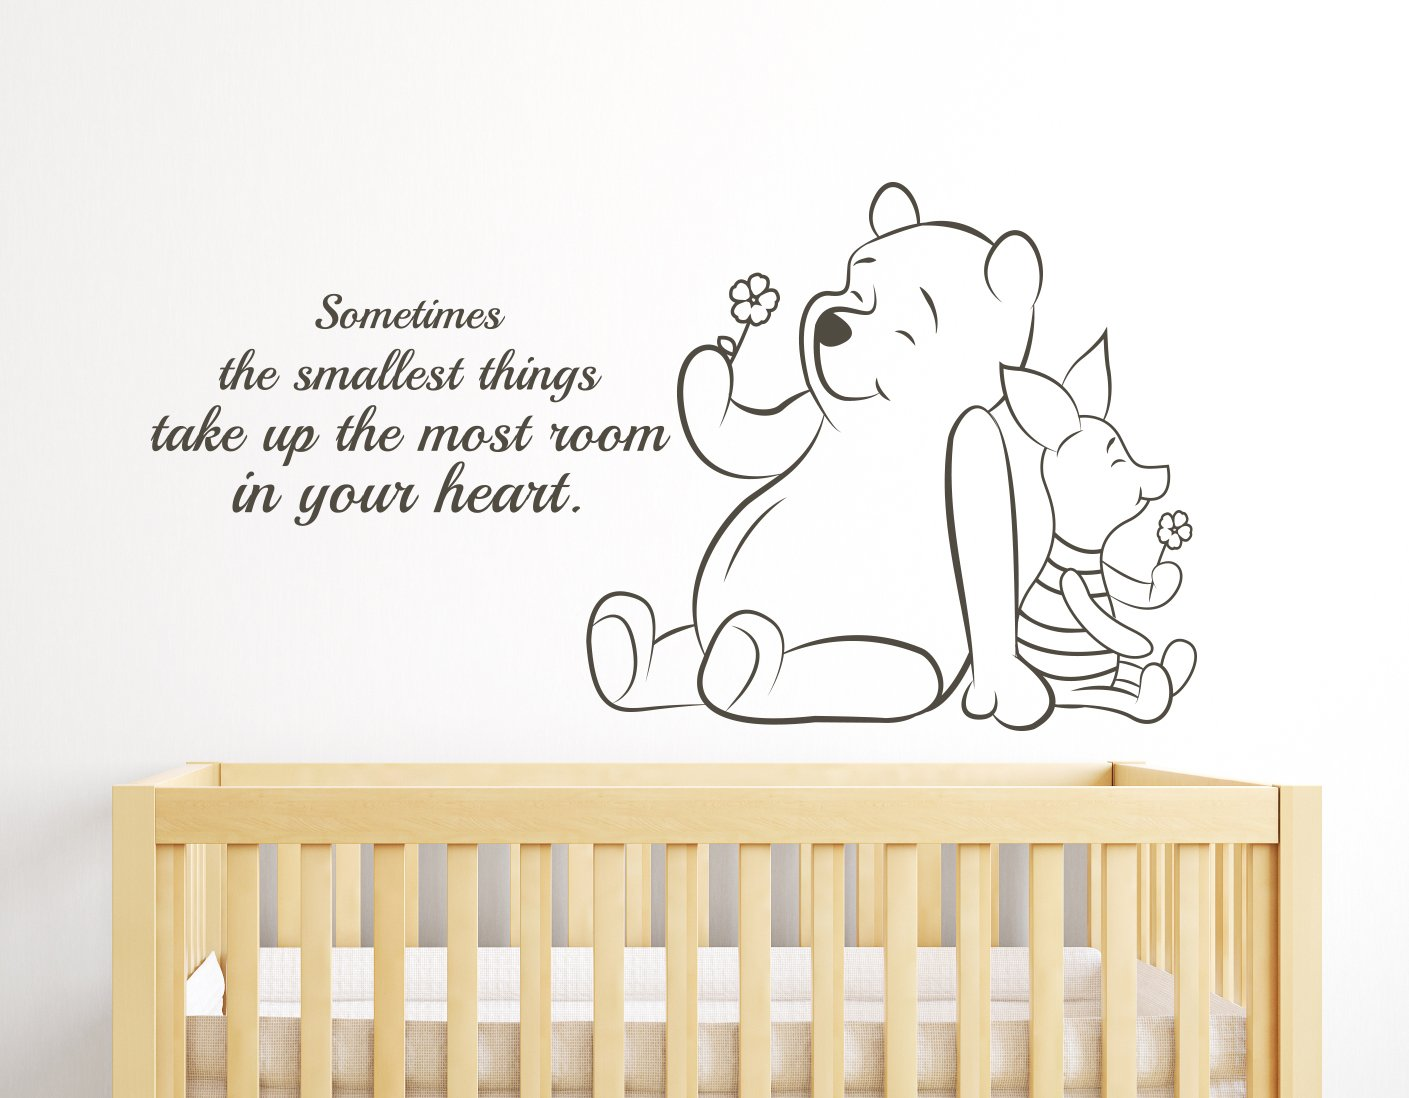 Sometimes the Smallest Things Take up the Most Room in Your Heart Winnie the Pooh Quote Nursery Wall Decals Wall Decor